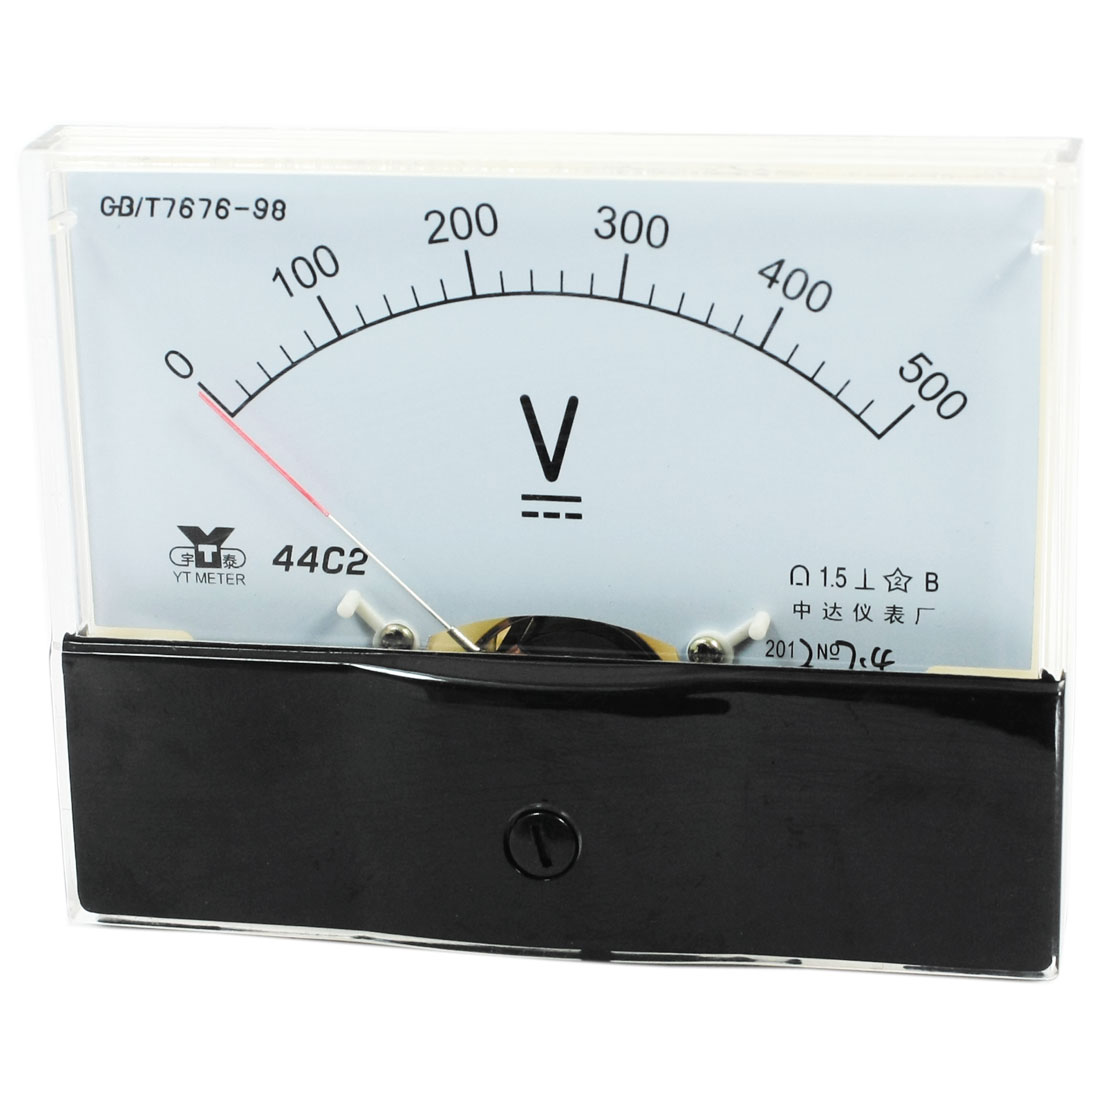 44C2 Rectangle Measurement Tool Analog Panel Voltmeter Volt Meter DC 0 - 500V Measuring Range